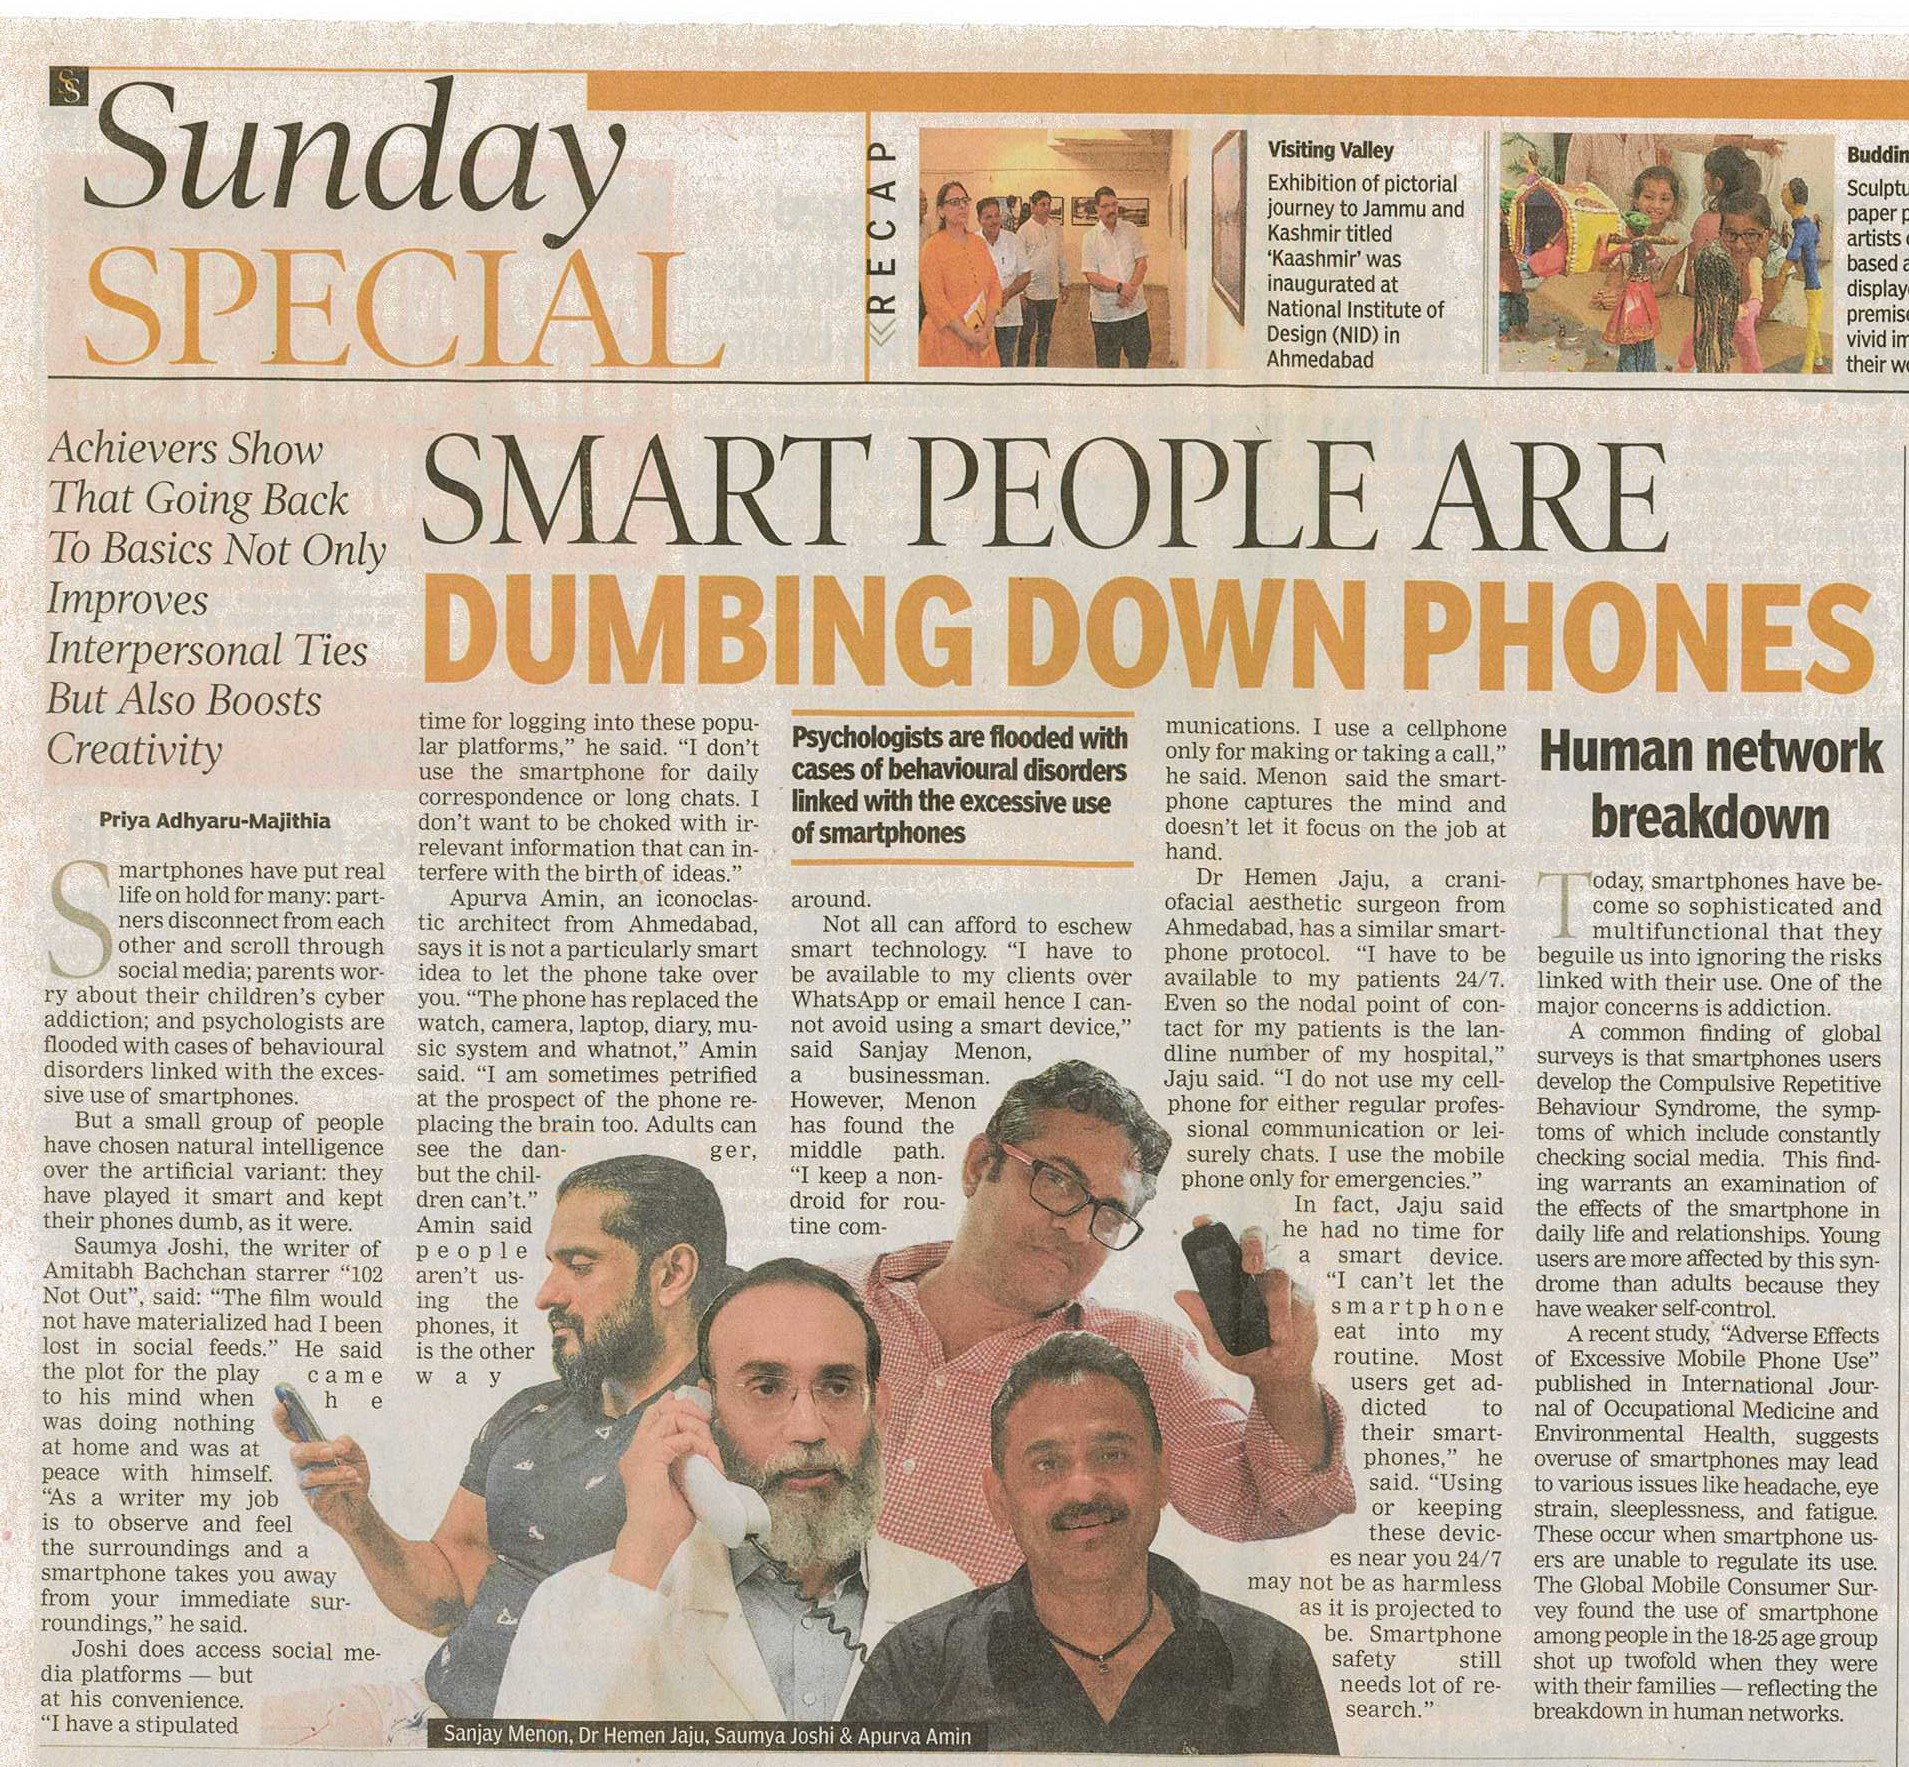 Smart People Are Dumbing Down Phones